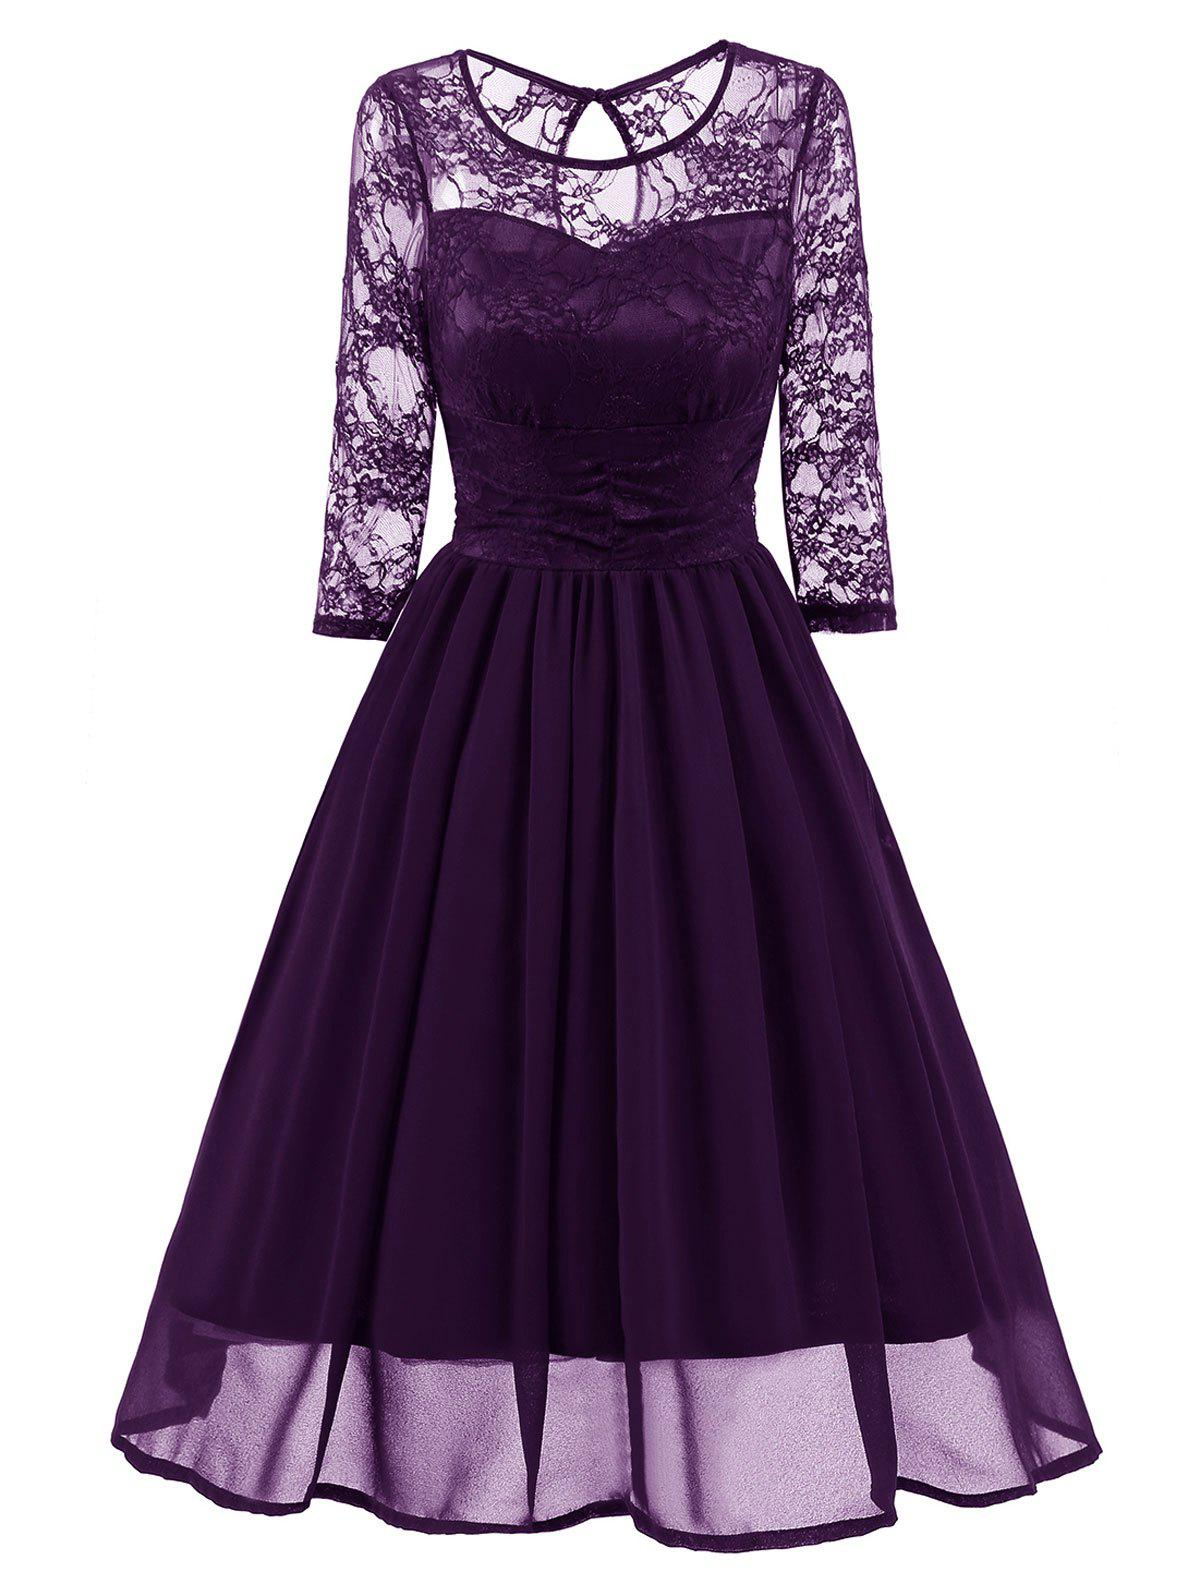 Lace Mesh Insert Vintage A Line DressWOMEN<br><br>Size: M; Color: PURPLE; Style: Vintage; Material: Polyester,Spandex; Silhouette: A-Line; Dresses Length: Knee-Length; Neckline: Round Collar; Sleeve Length: 3/4 Length Sleeves; Embellishment: Lace; Pattern Type: Solid; With Belt: No; Season: Fall,Spring; Weight: 0.4550kg; Package Contents: 1 x Dress;